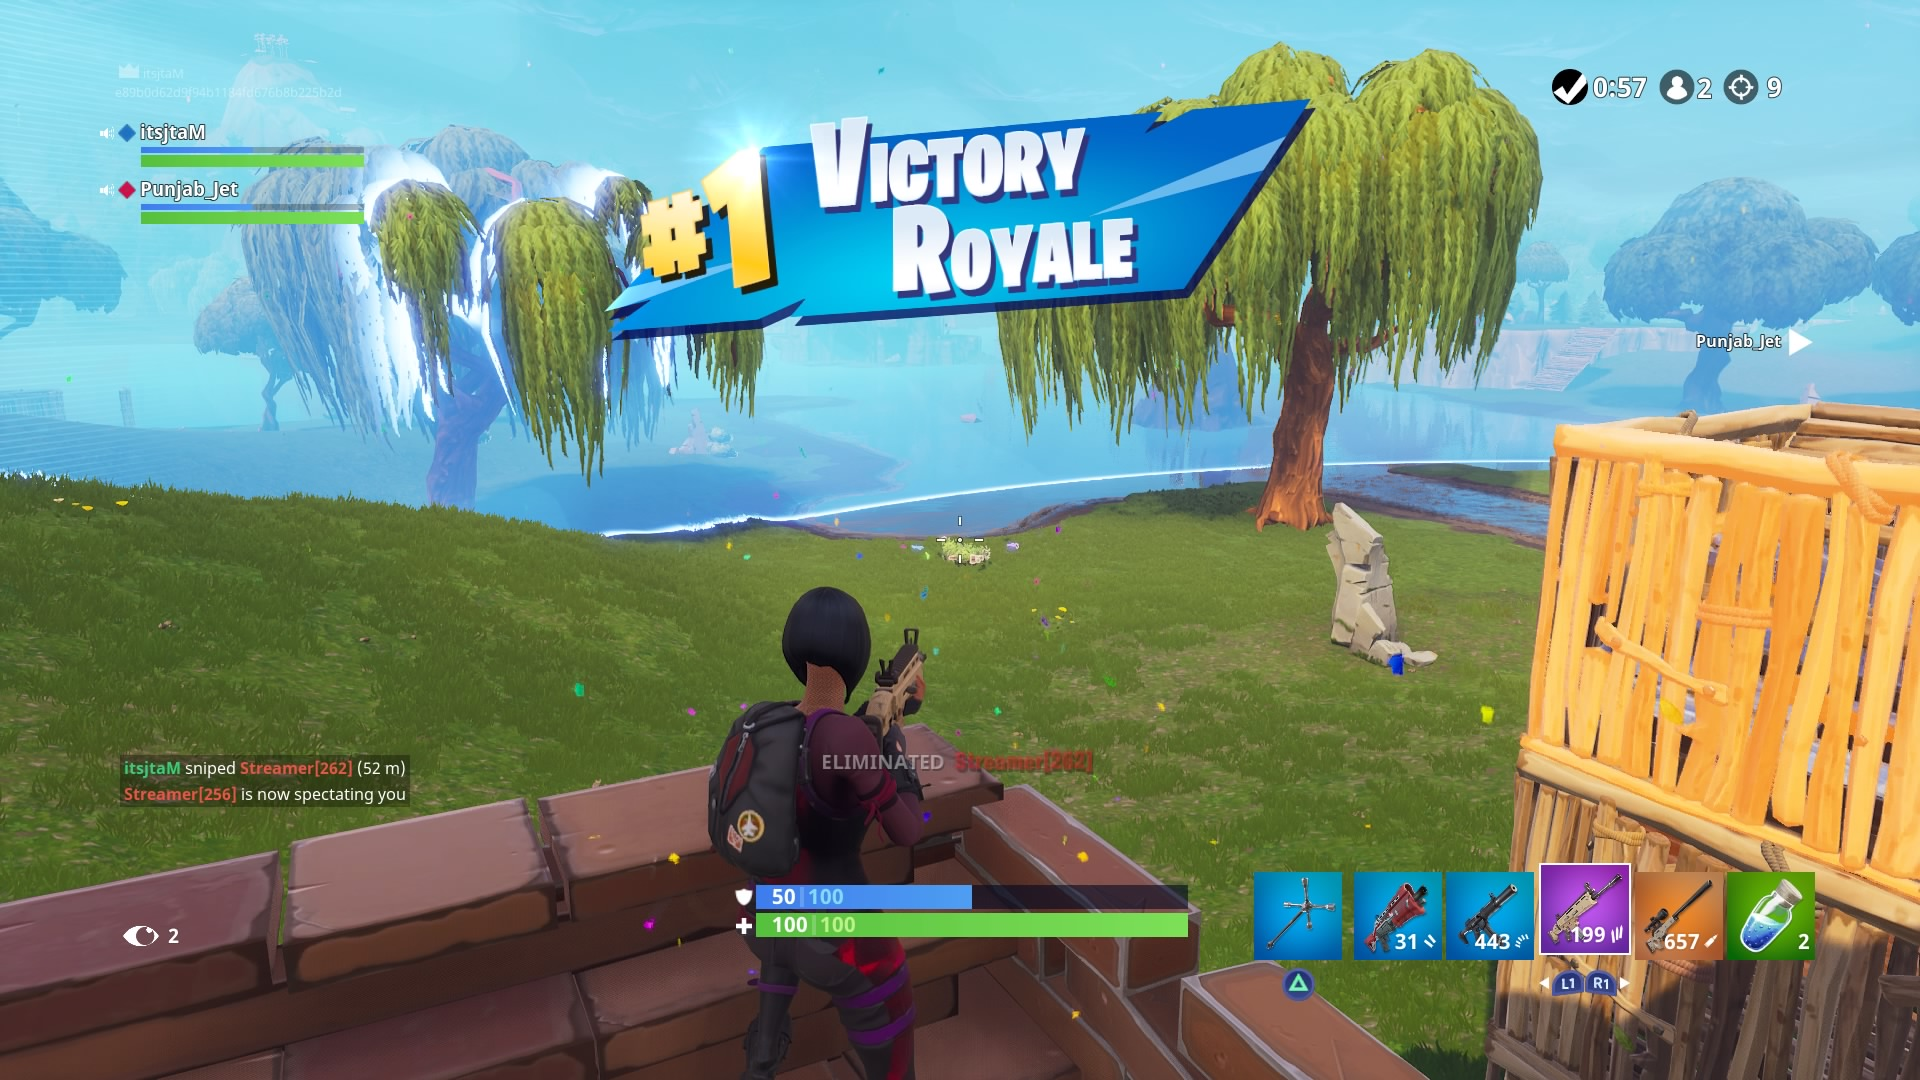 fortnite victory royale hd wallpaper 64825